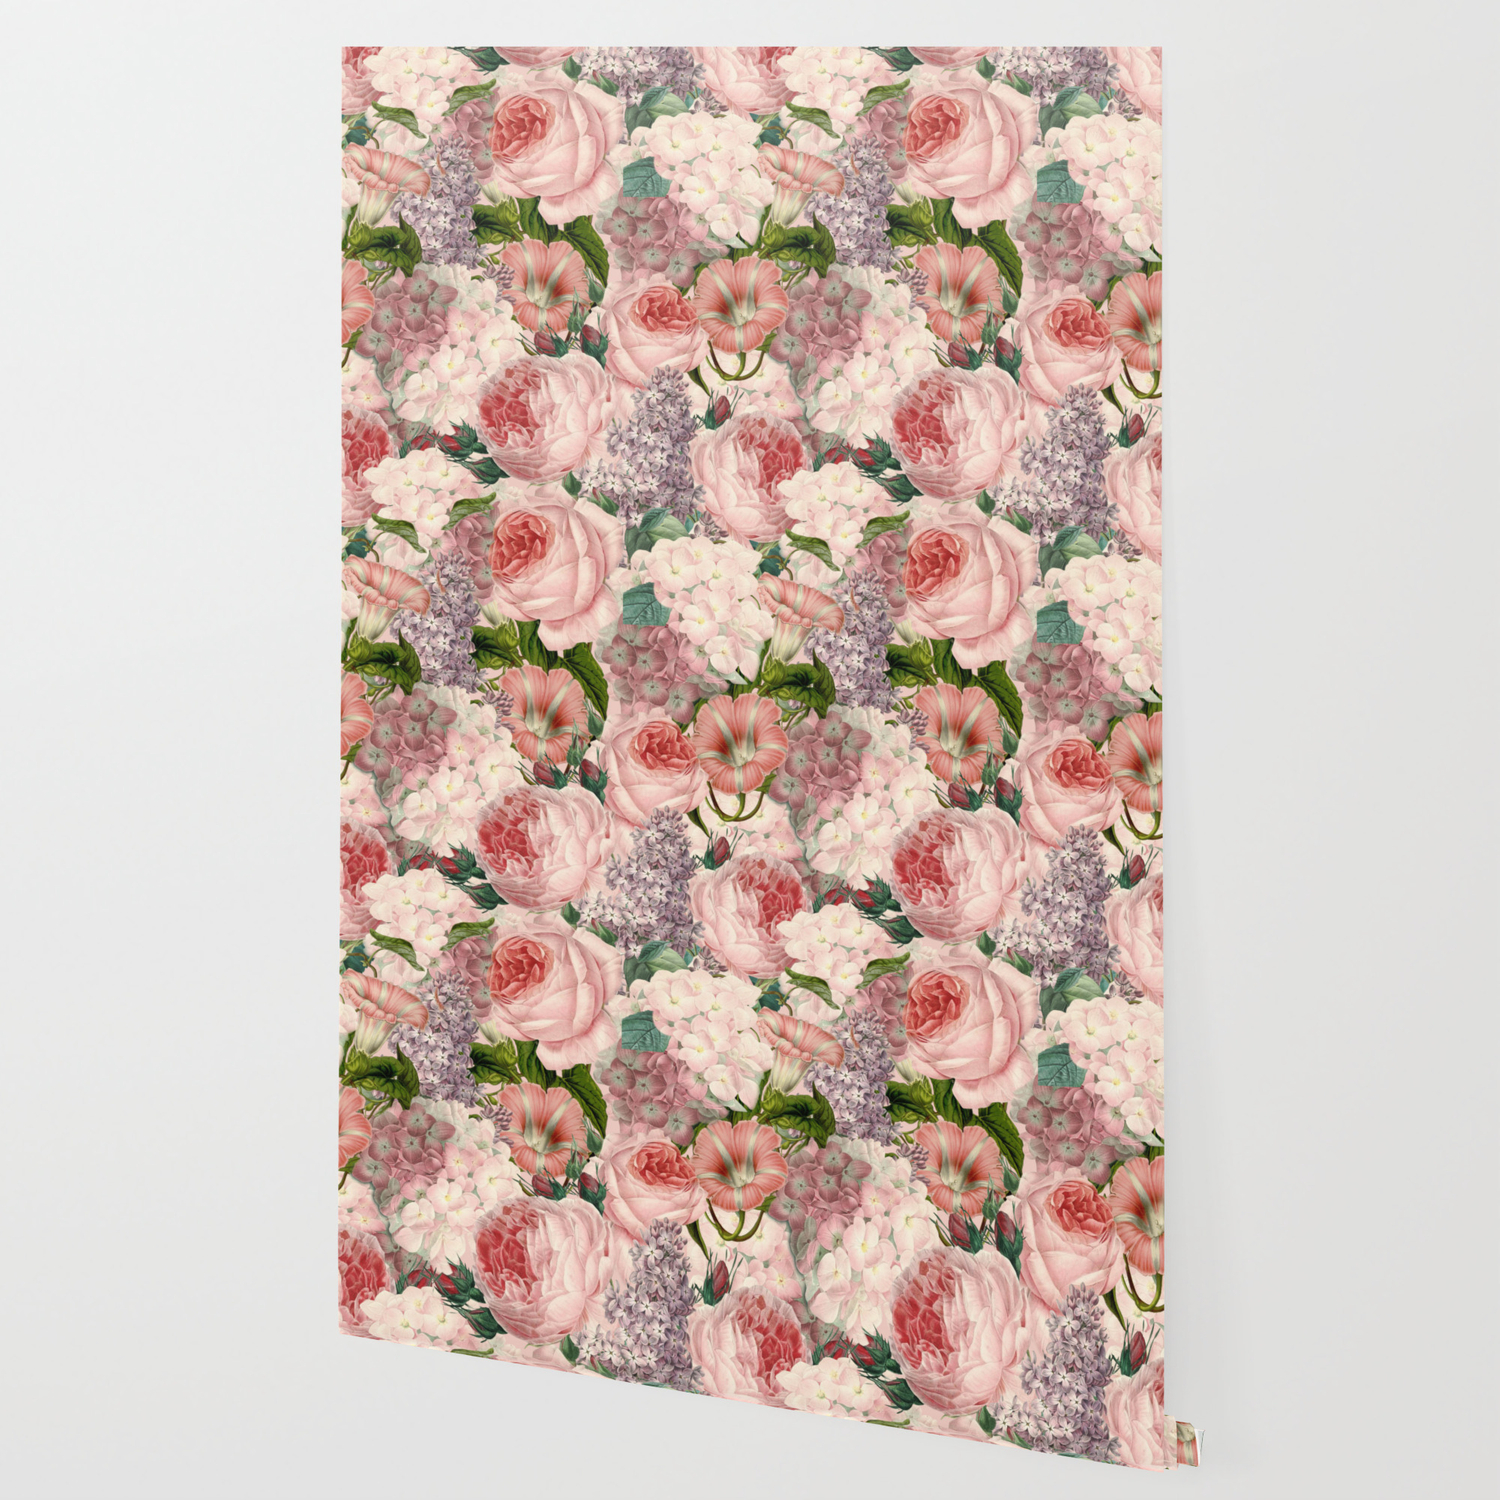 Vintage Shabby Chic Pink Dark Floral Roses Lilacs Flowers